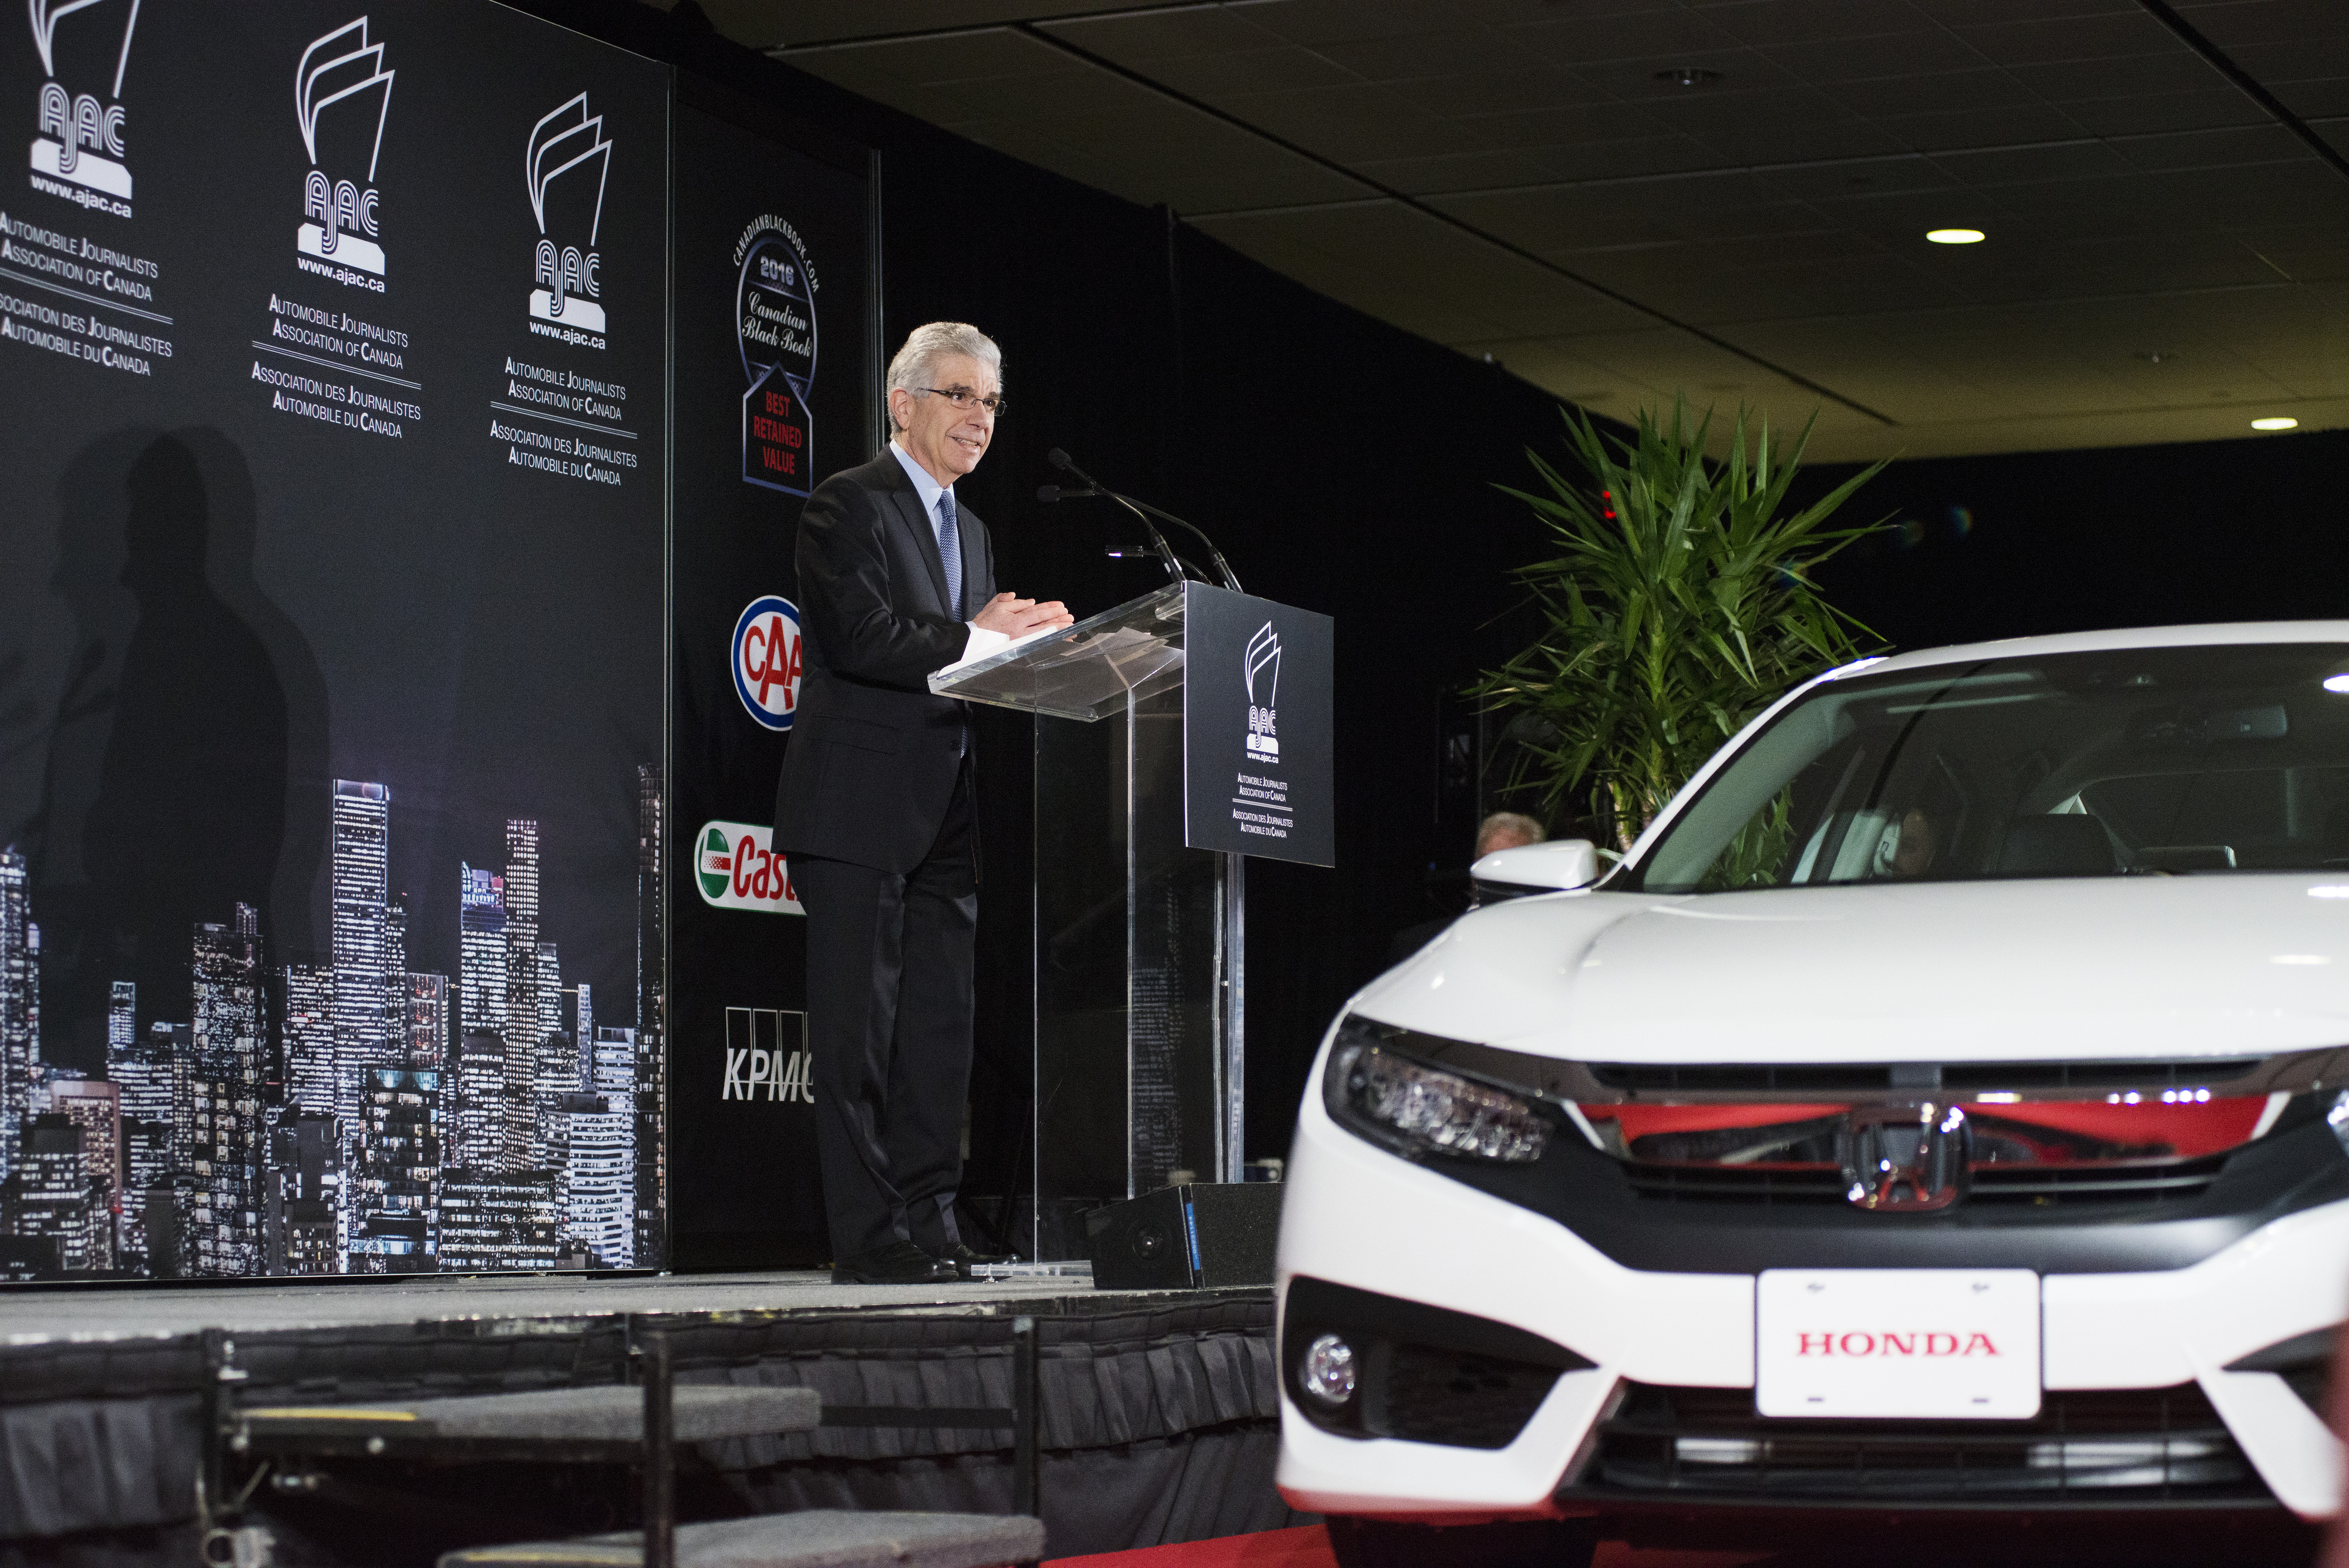 Honda President and CEO Jerry Chenkin accepting the 2016 Canadian Car of the Year (CCOTY) Award for the Honda Civic.  (Photos By: Michelle Siu)